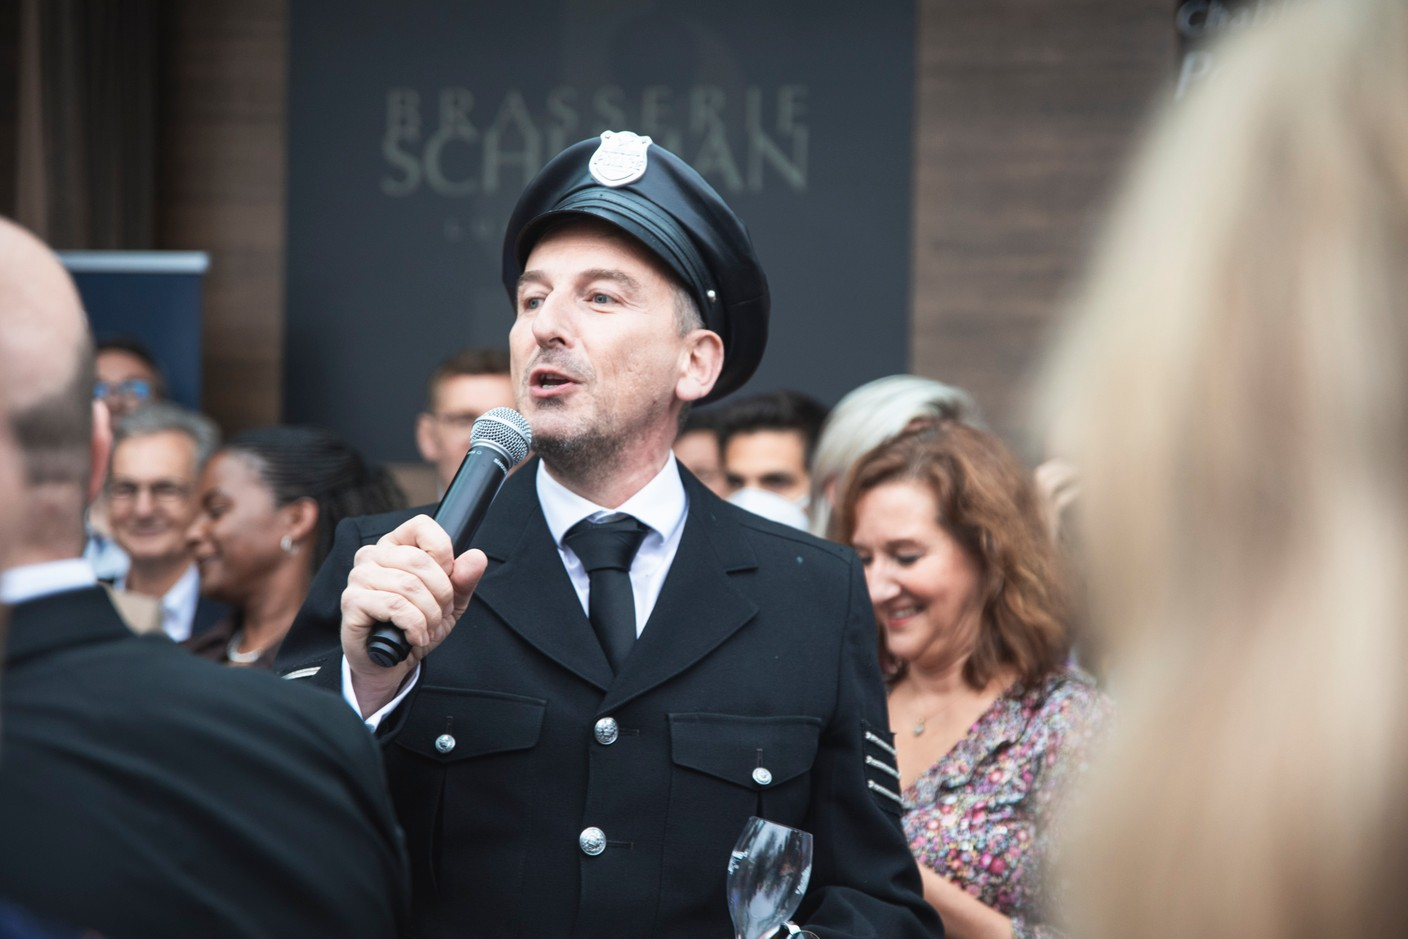 Jim Kent from the Paperjam + Delano Club is seen speaking during Delano's 10th anniversary party, 13 July 2021. Simon Verjus/Maison Moderne